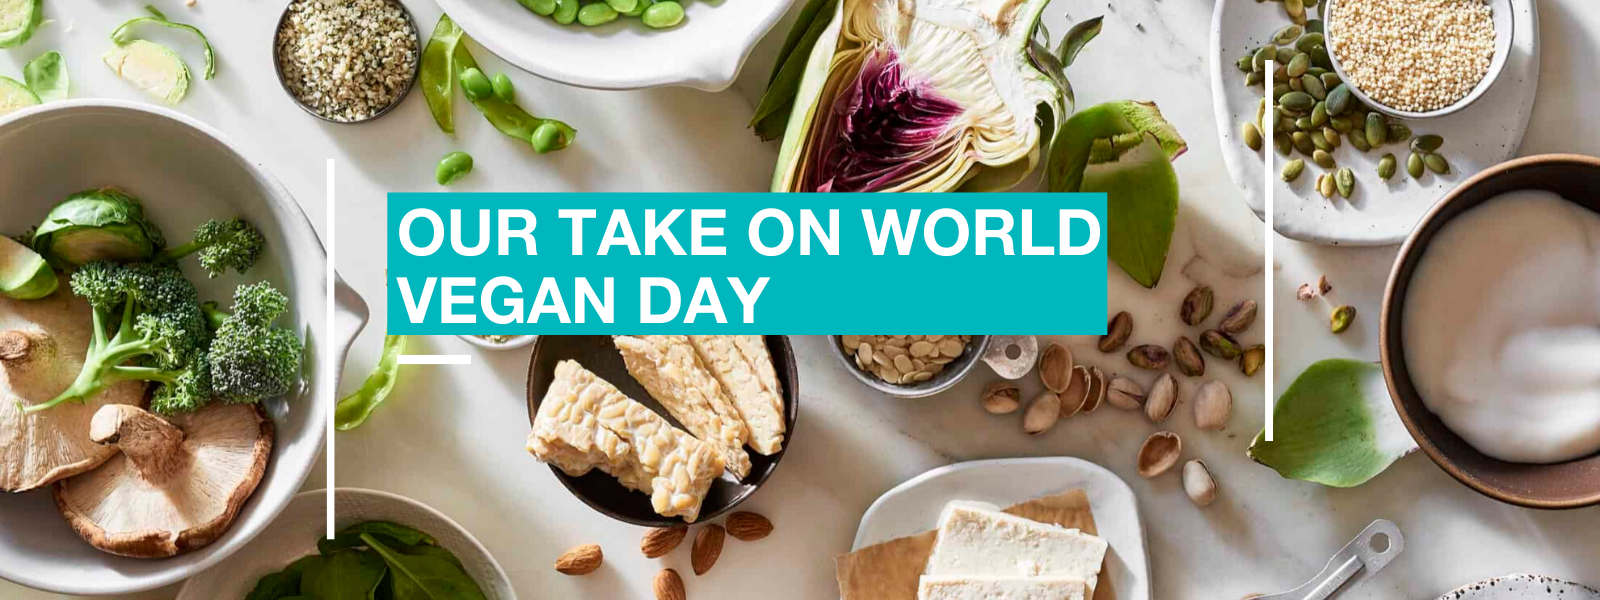 Our take on World Vegan Day